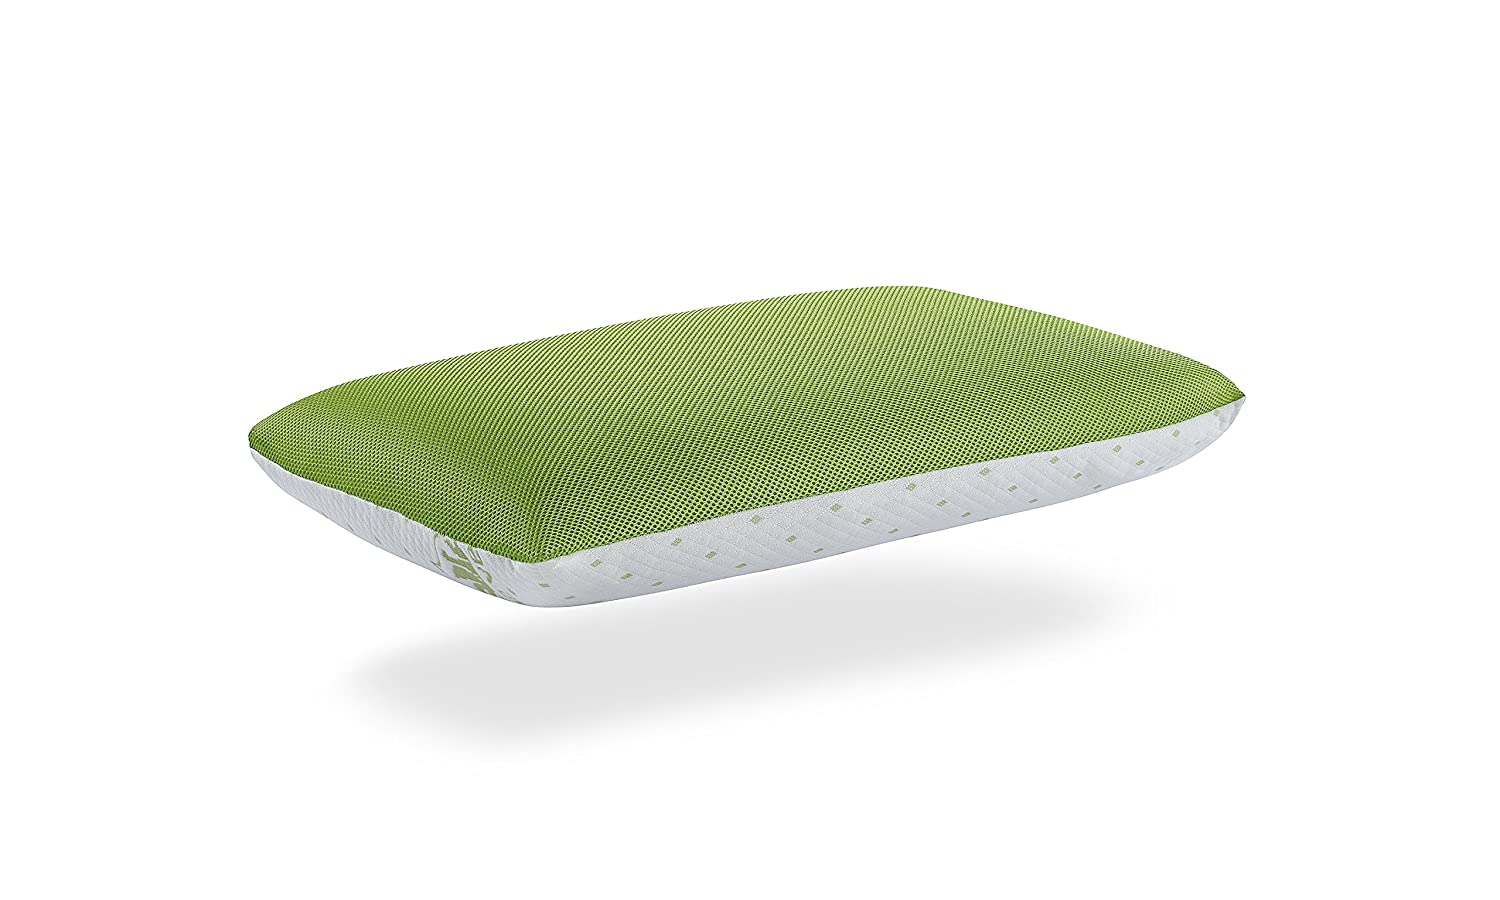 Living Sofa COLCHÓN VISCO GRAFENO Certificado con Almohada DE Regalo Aloe Vera VISCO GRAFENO 150 X 200 (Todas Las Medidas): Amazon.es: Hogar